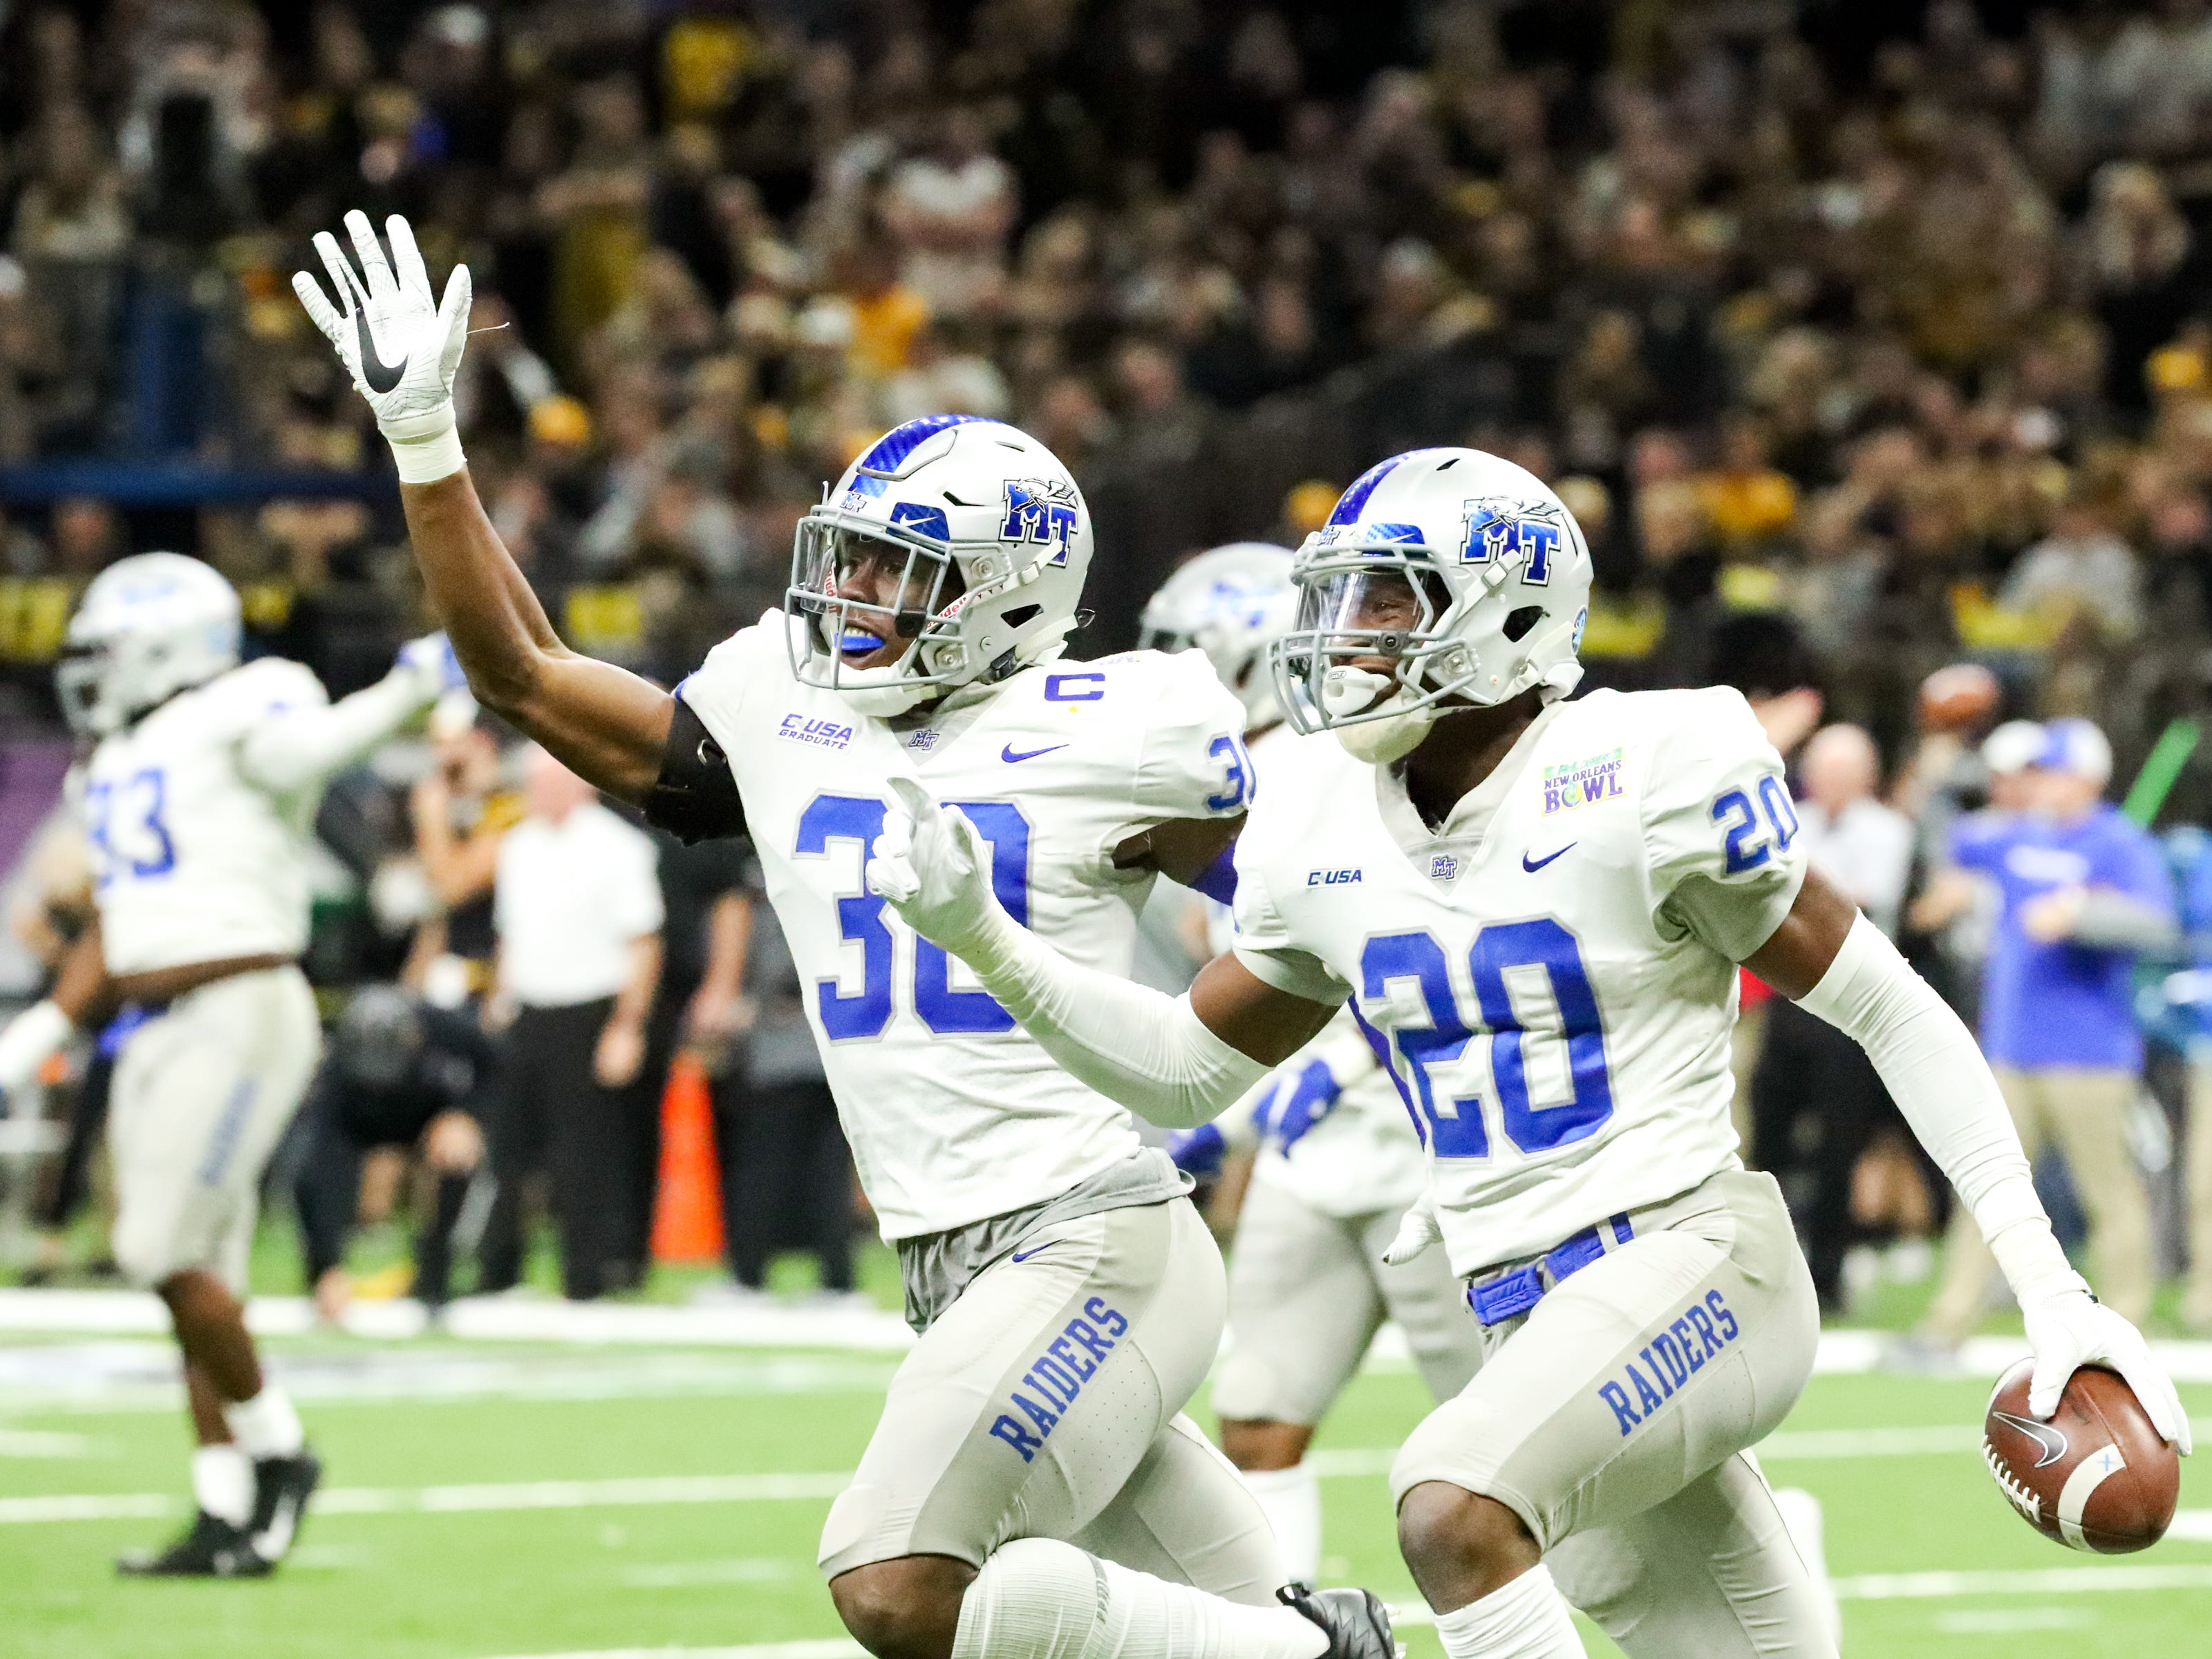 Middle Tennessee Blue Raiders linebacker DQ Thomas (20) and Middle Tennessee Blue Raiders linebacker Darius Harris (30) celebrate Thomas' fumble recovery from the Appalachian State Mountaineers during the first half at the Mercedes-Benz Superdome Saturday, Dec. 15, 2018, in New Orleans, La.